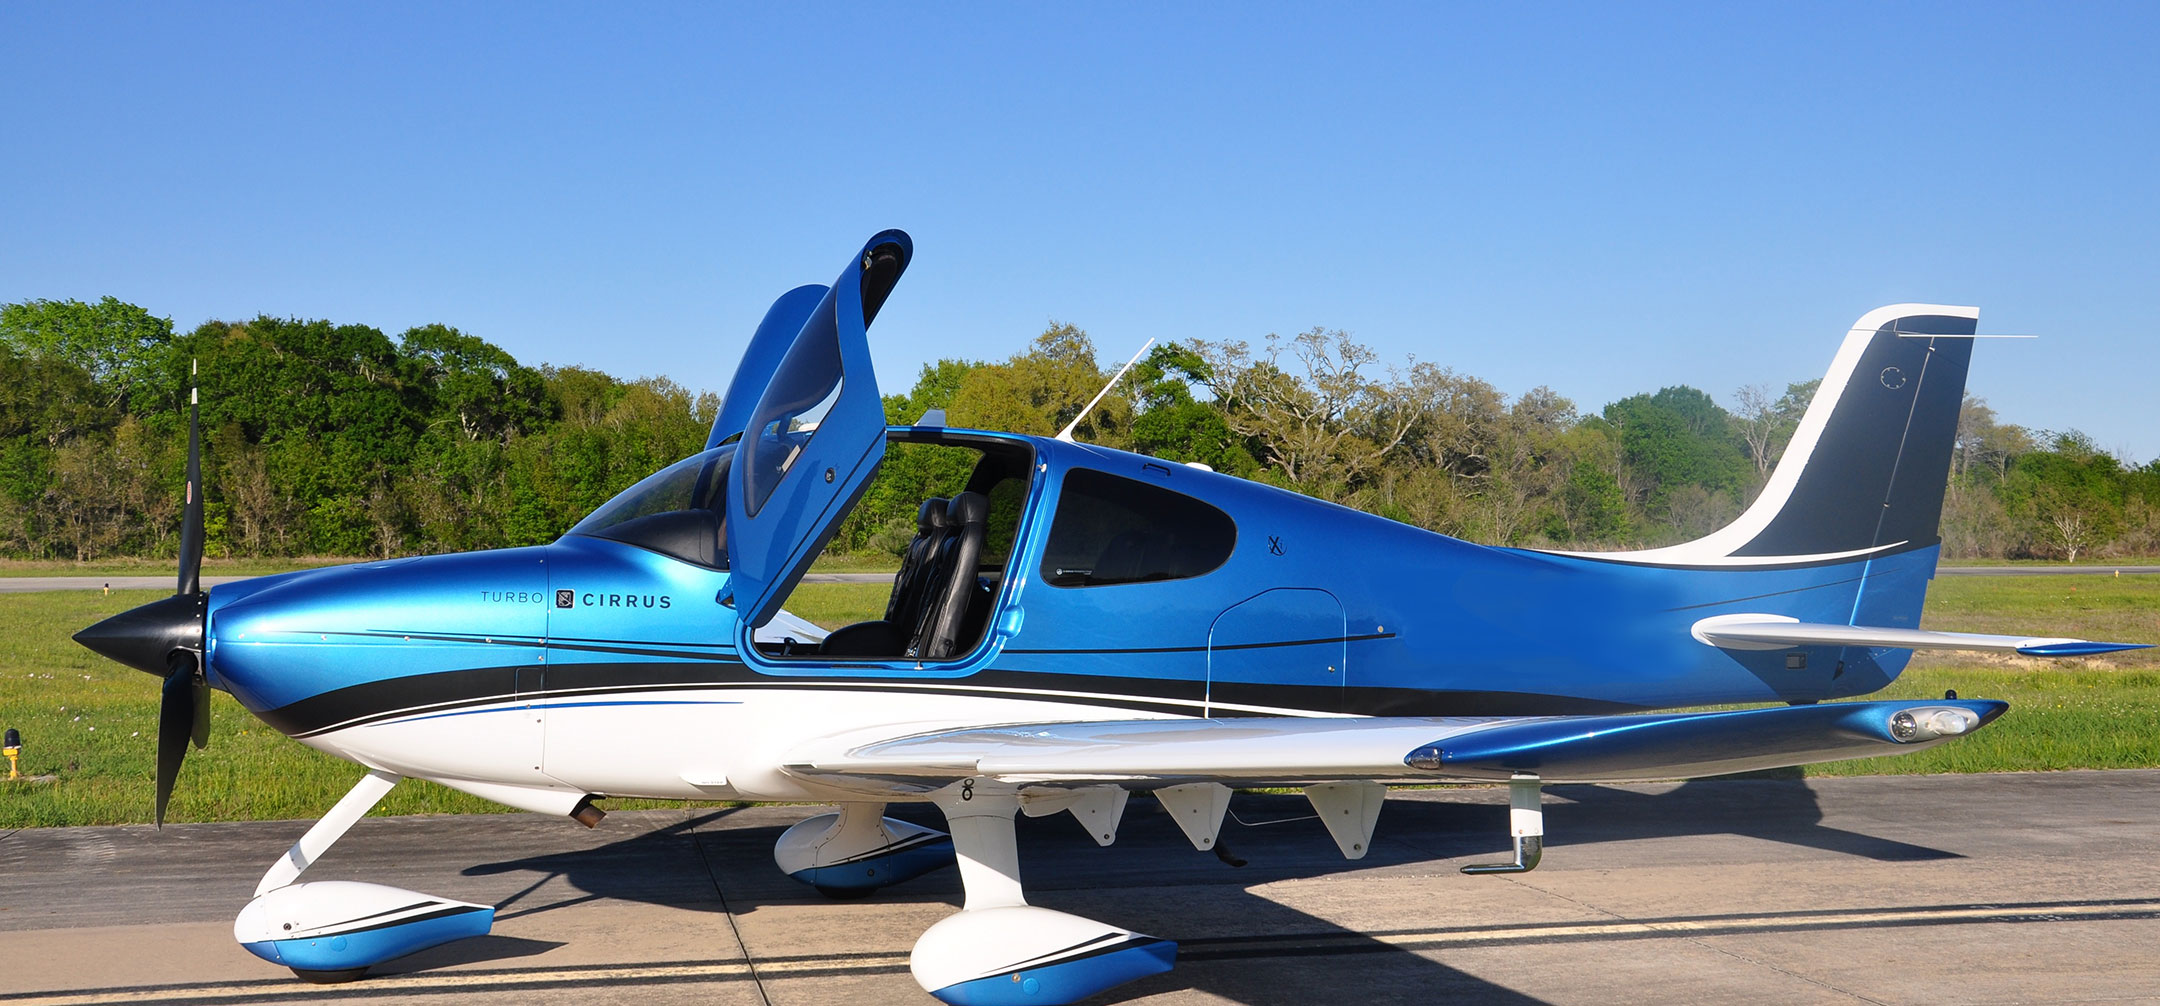 Texas Aircraft Propeller & Accessories | Pearland, TX